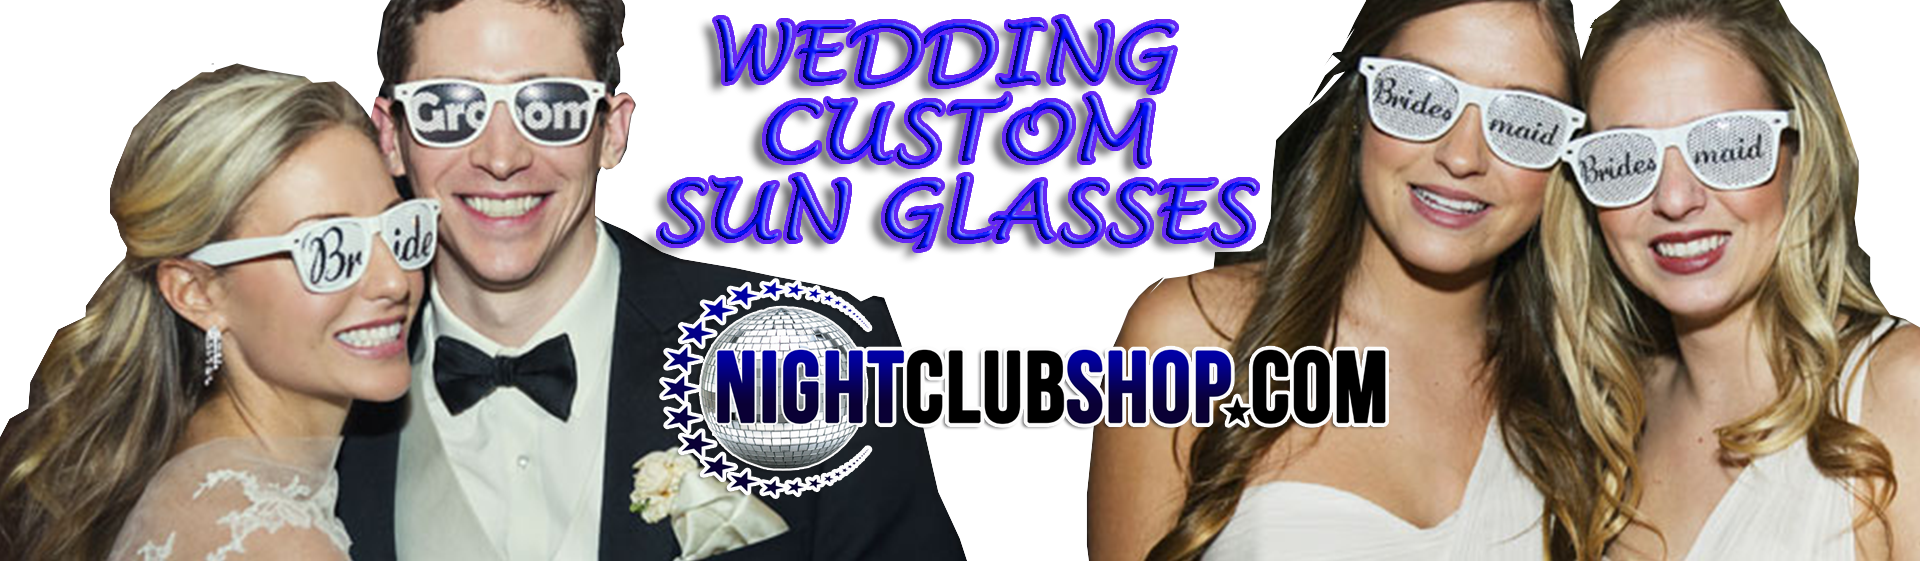 custom-print-wedding-sun-glasses-shades-lenses-sunglasses-billboard-bride-groom-party-favor-nightclubshop-bride-groom.png